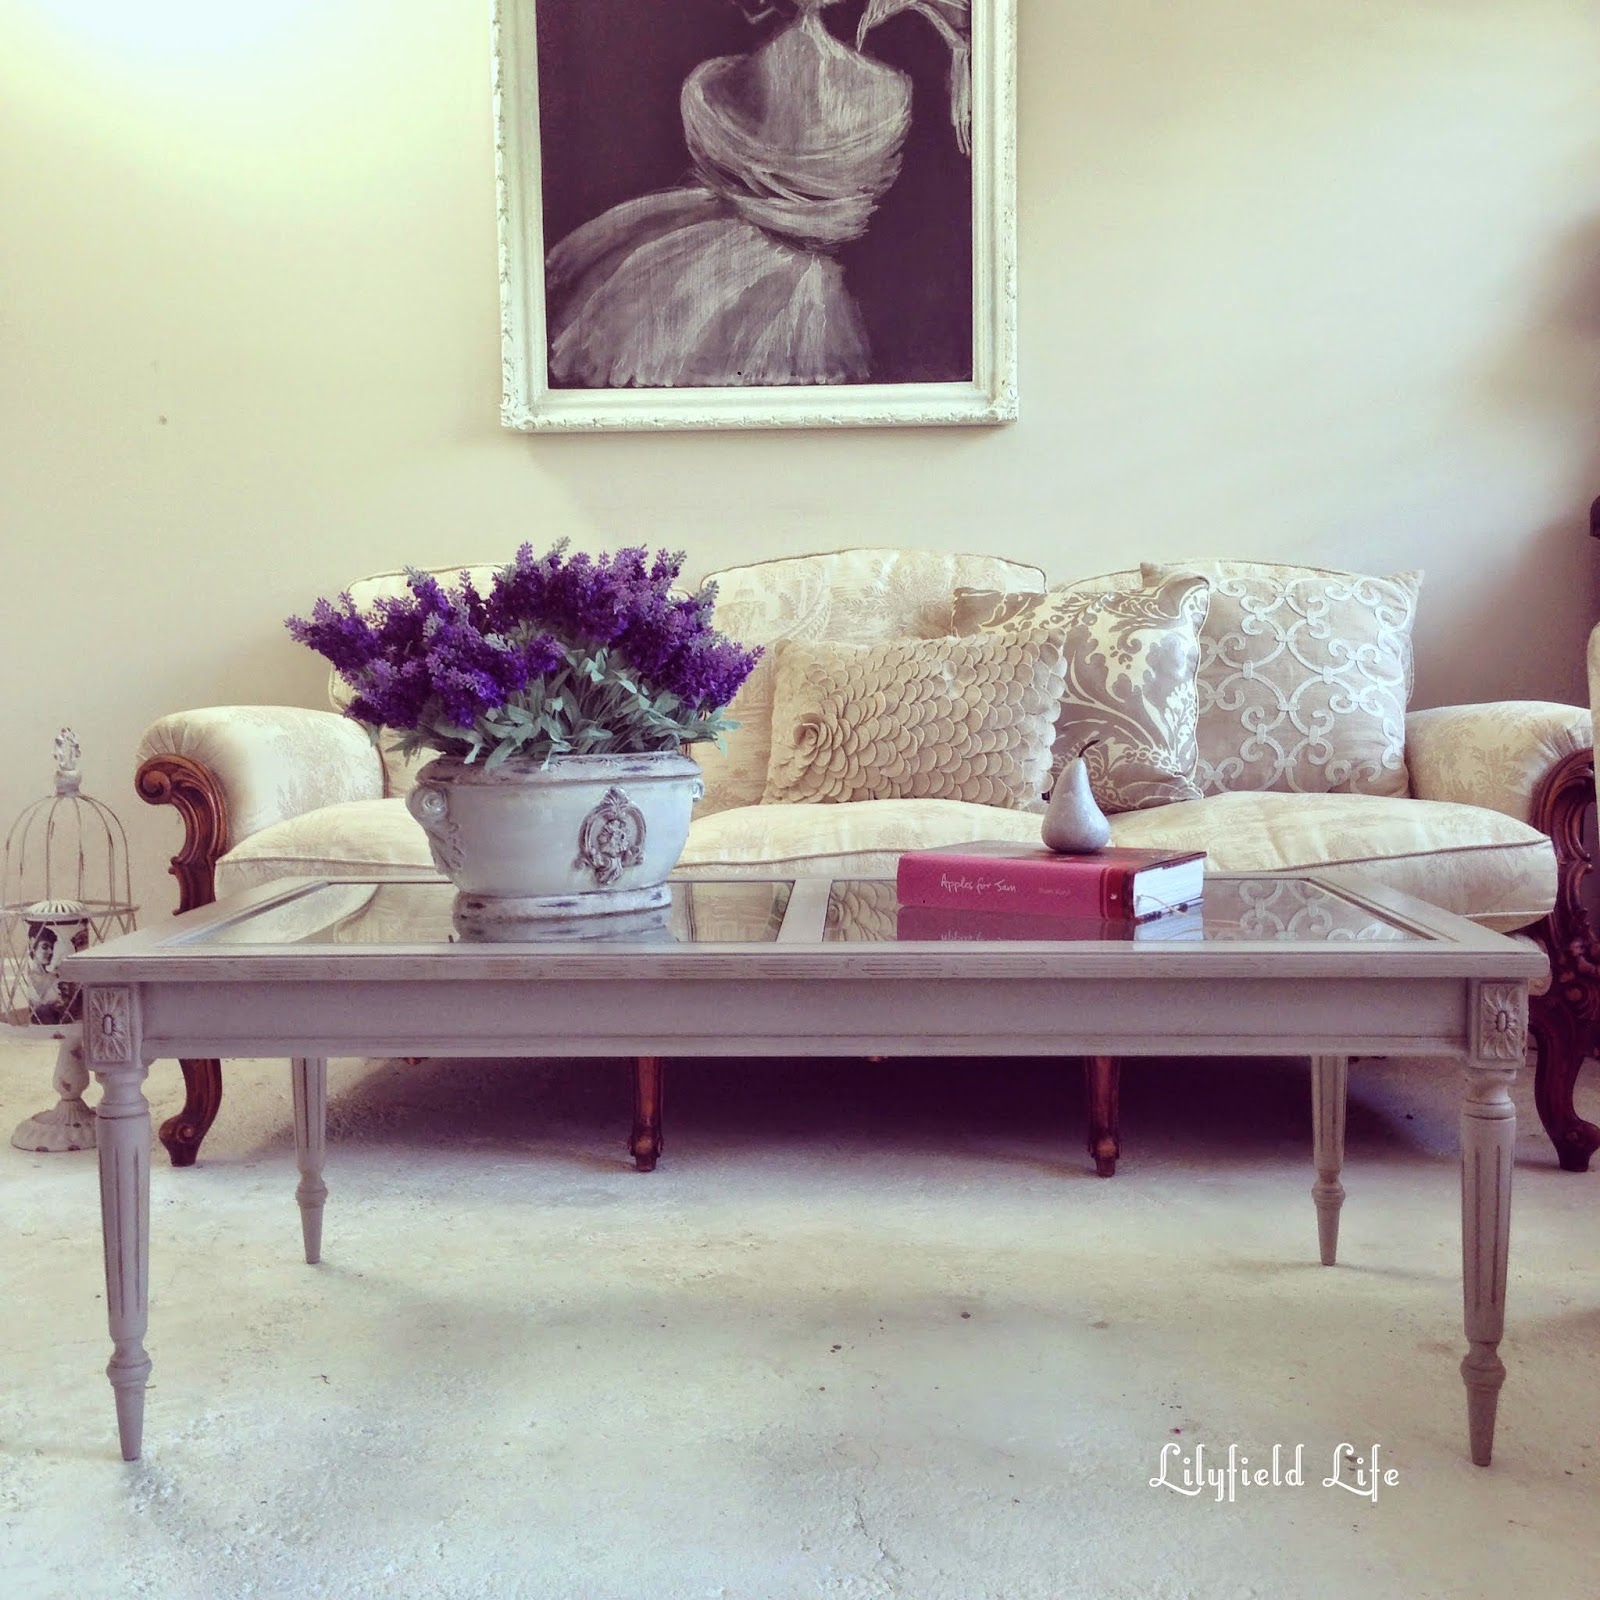 french coffee table hand painted furniture Lilyfield Life